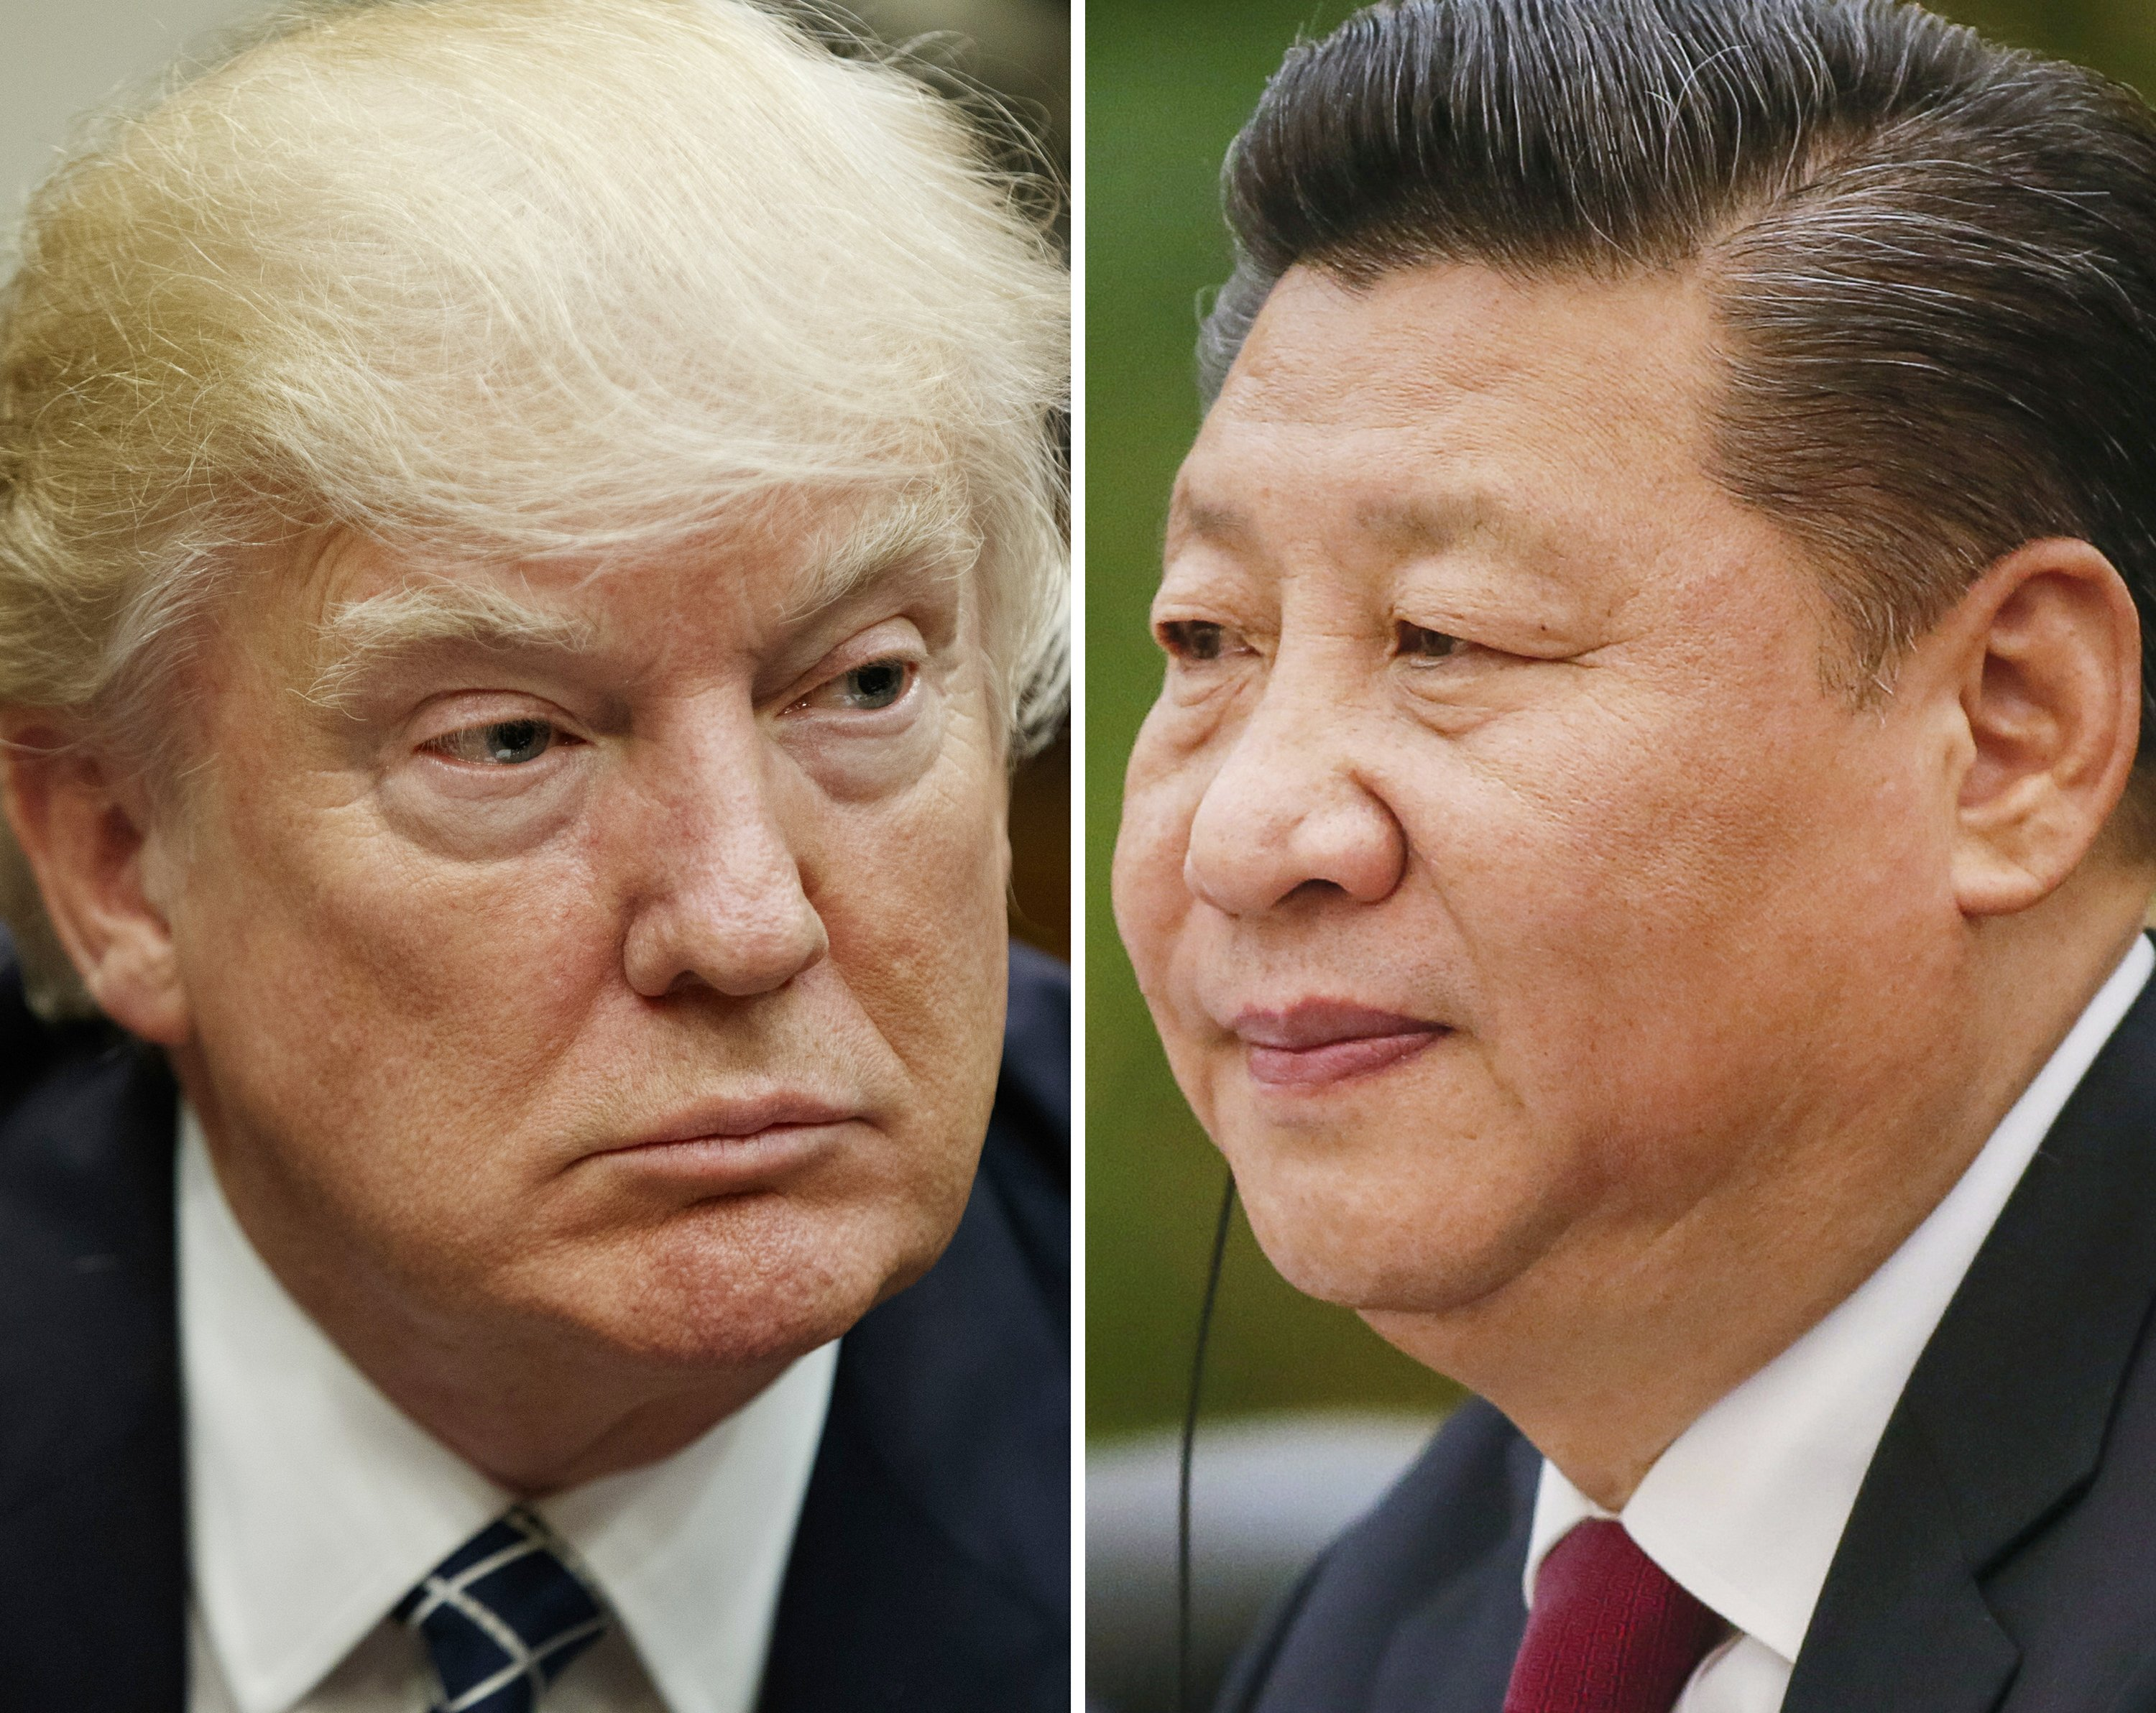 China's Xi to meet Trump, who predicts 'difficult' meeting